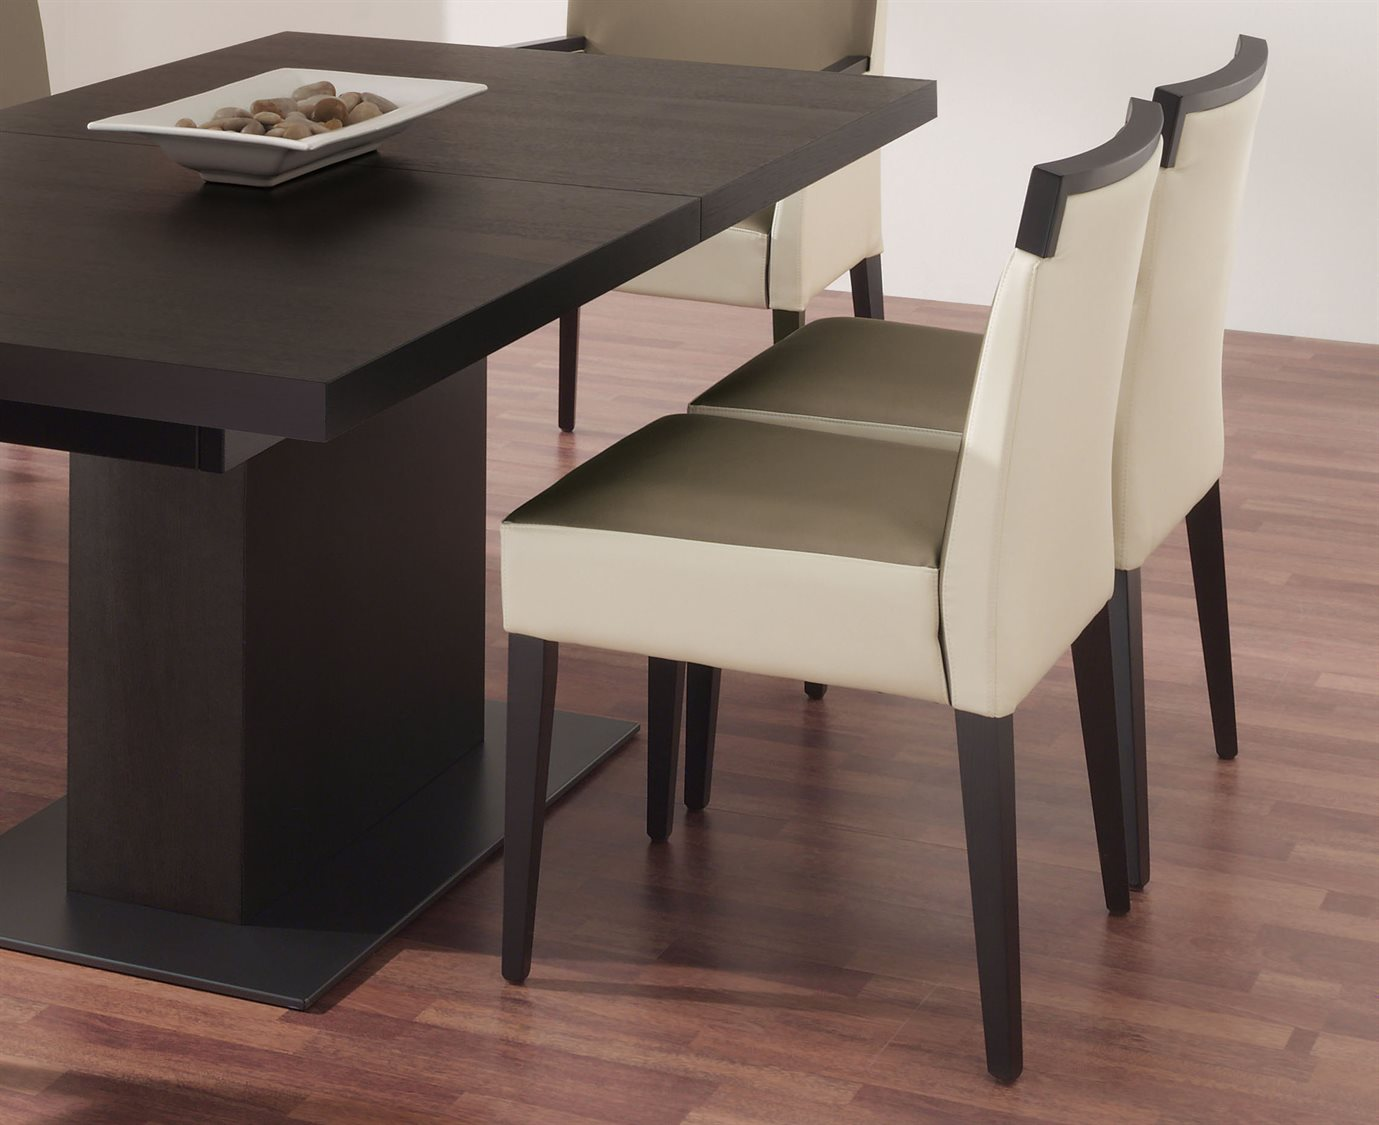 Domitalia ariel dining side chair sold in 2 domariel for Ariel chaise lounge